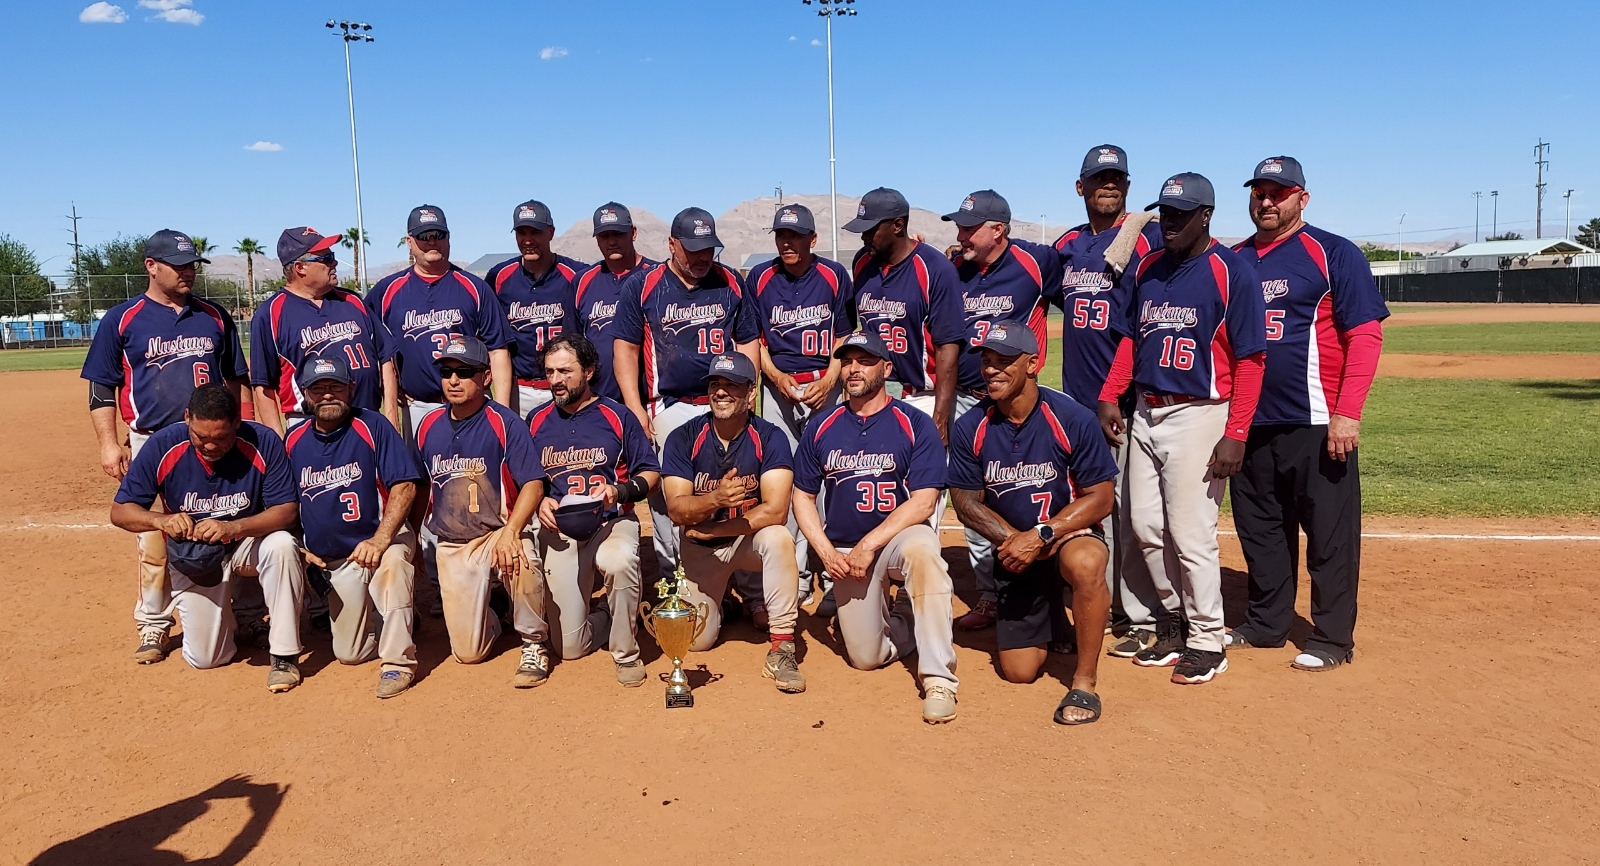 Current and former DCMSBL players on the 45 Vegas open championship team....Rick Clough, Omar Arelano, Chris Dunn, George Popkhadze, Vinvent Towns, Mike LaComb, Andre Keene, Jose Tovar, Mike Bailey.  Other Mustang tournament players...Dave Winstead, Scott McIntosh. Mike Burton, Spencer Headley, Mike Wood, Tony Moore, Ralph Rodriguez, Joe Flanagan, Rich Arcosta, Ray Davis